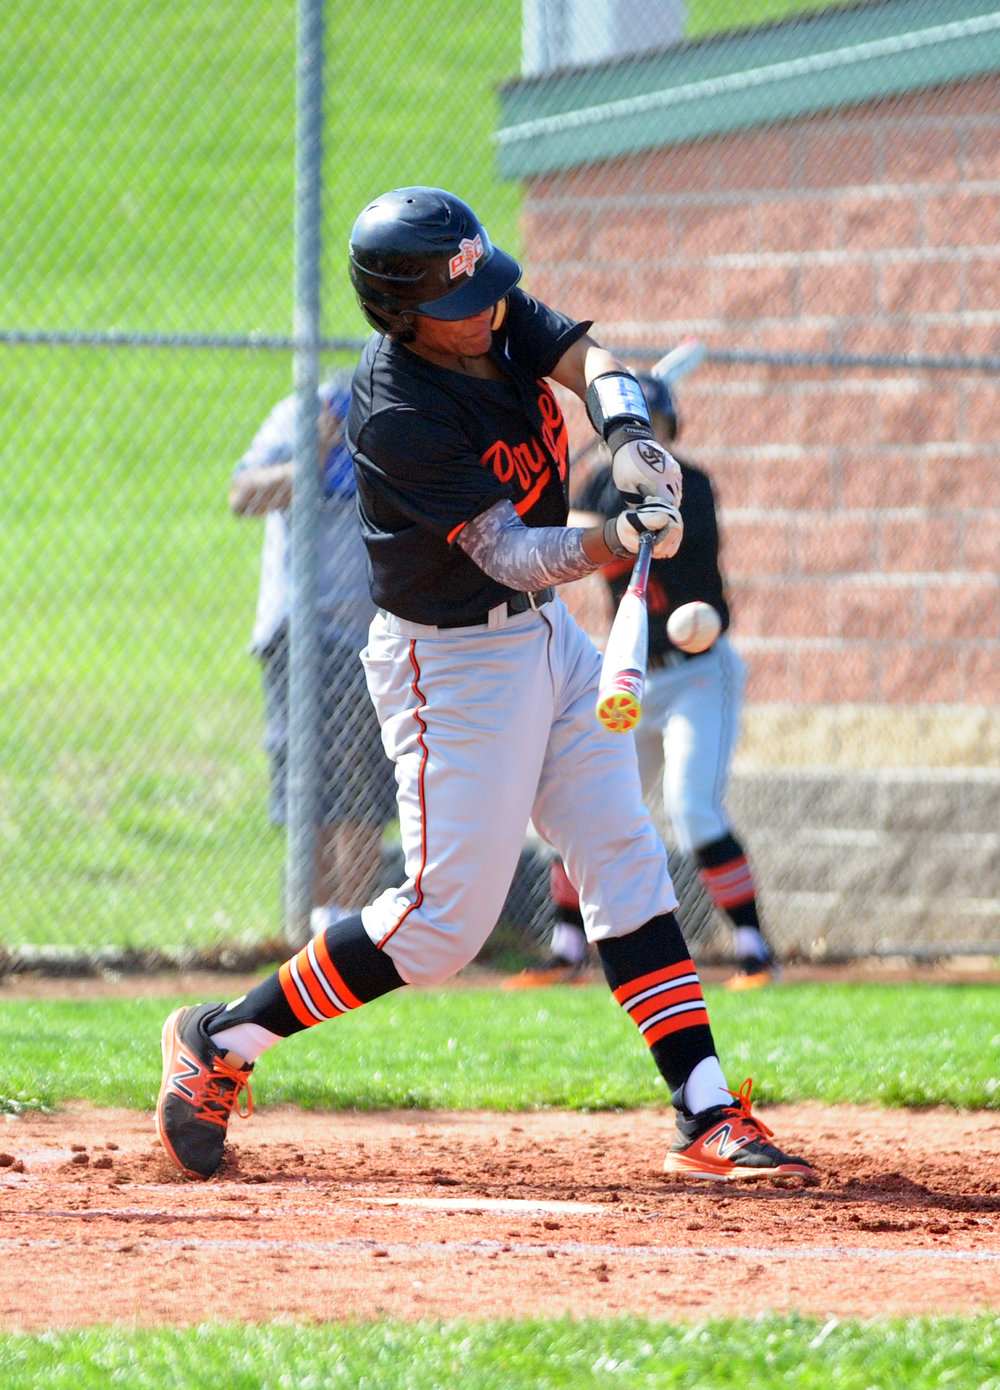 NICK INGRAM/Citizen photo Platte County junior outfielder makes contact in a game against Smithville on Monday, April 17 in Smithville, Mo.